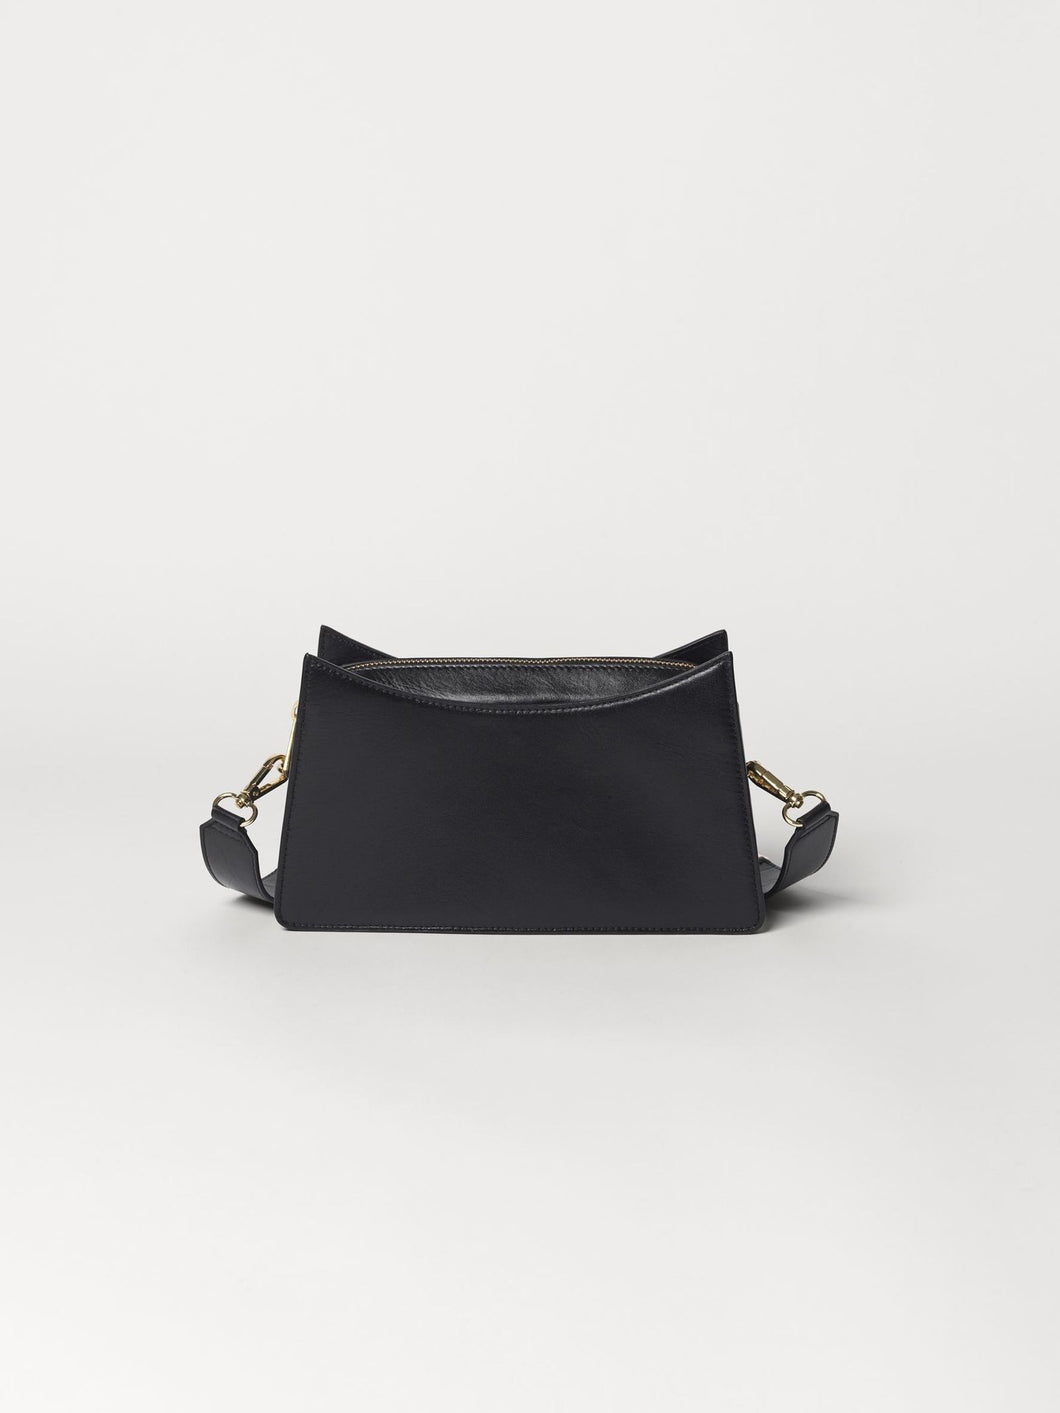 Thera Bag Black Black